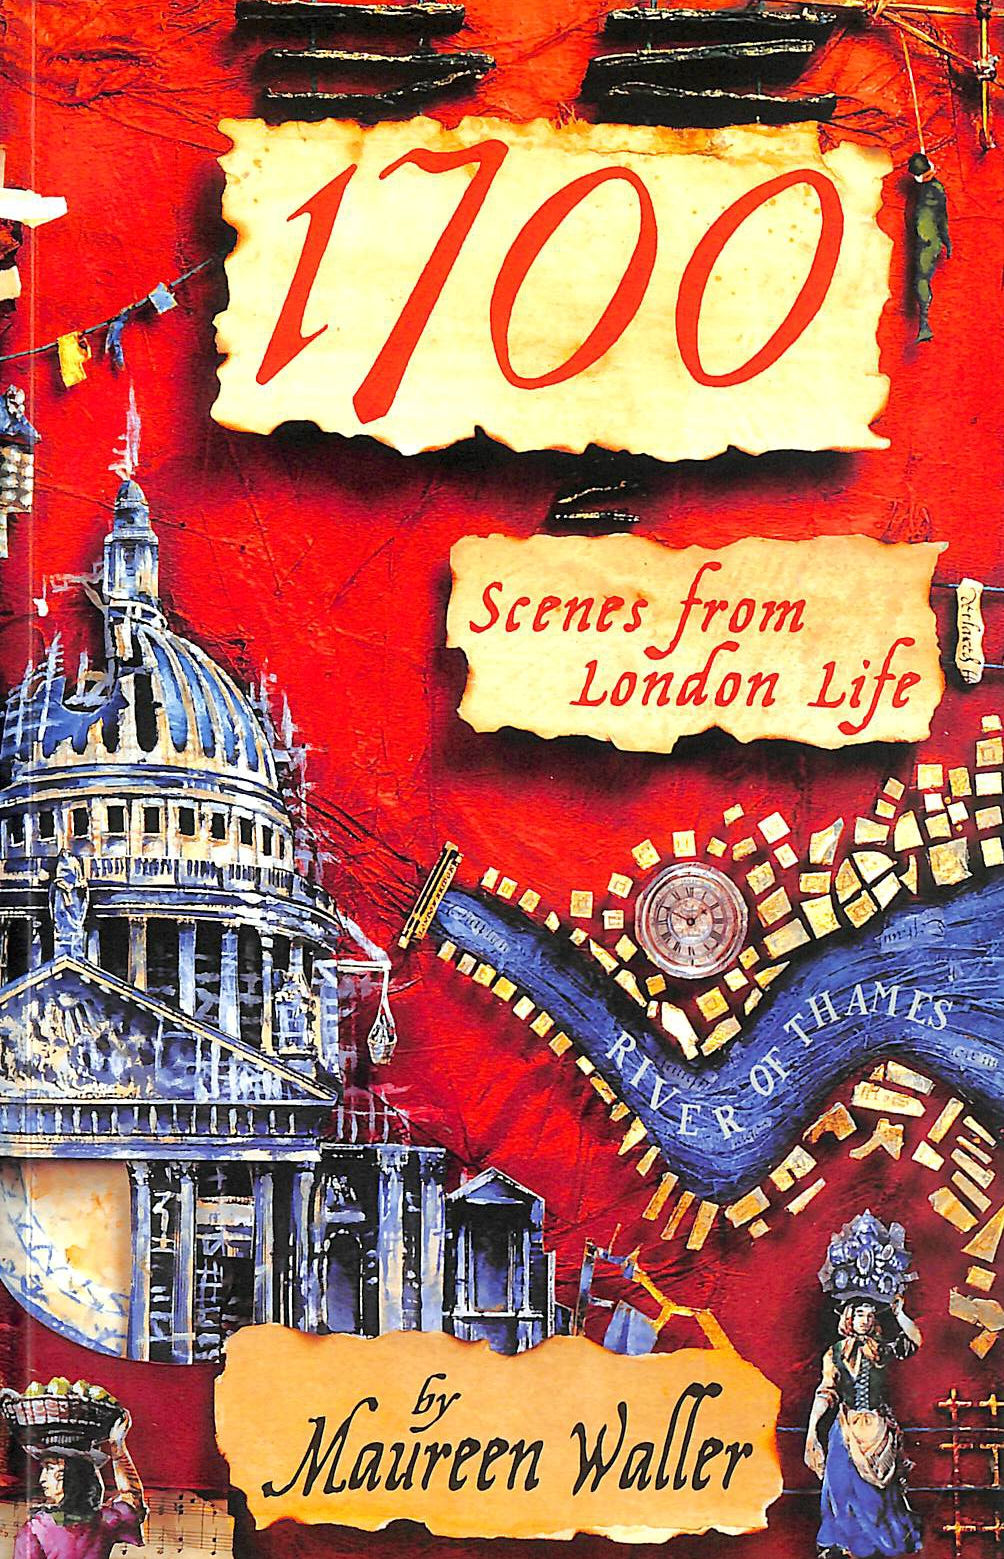 Image for 1700: Scenes from London Life by Maureen Waller (2001-02-01)